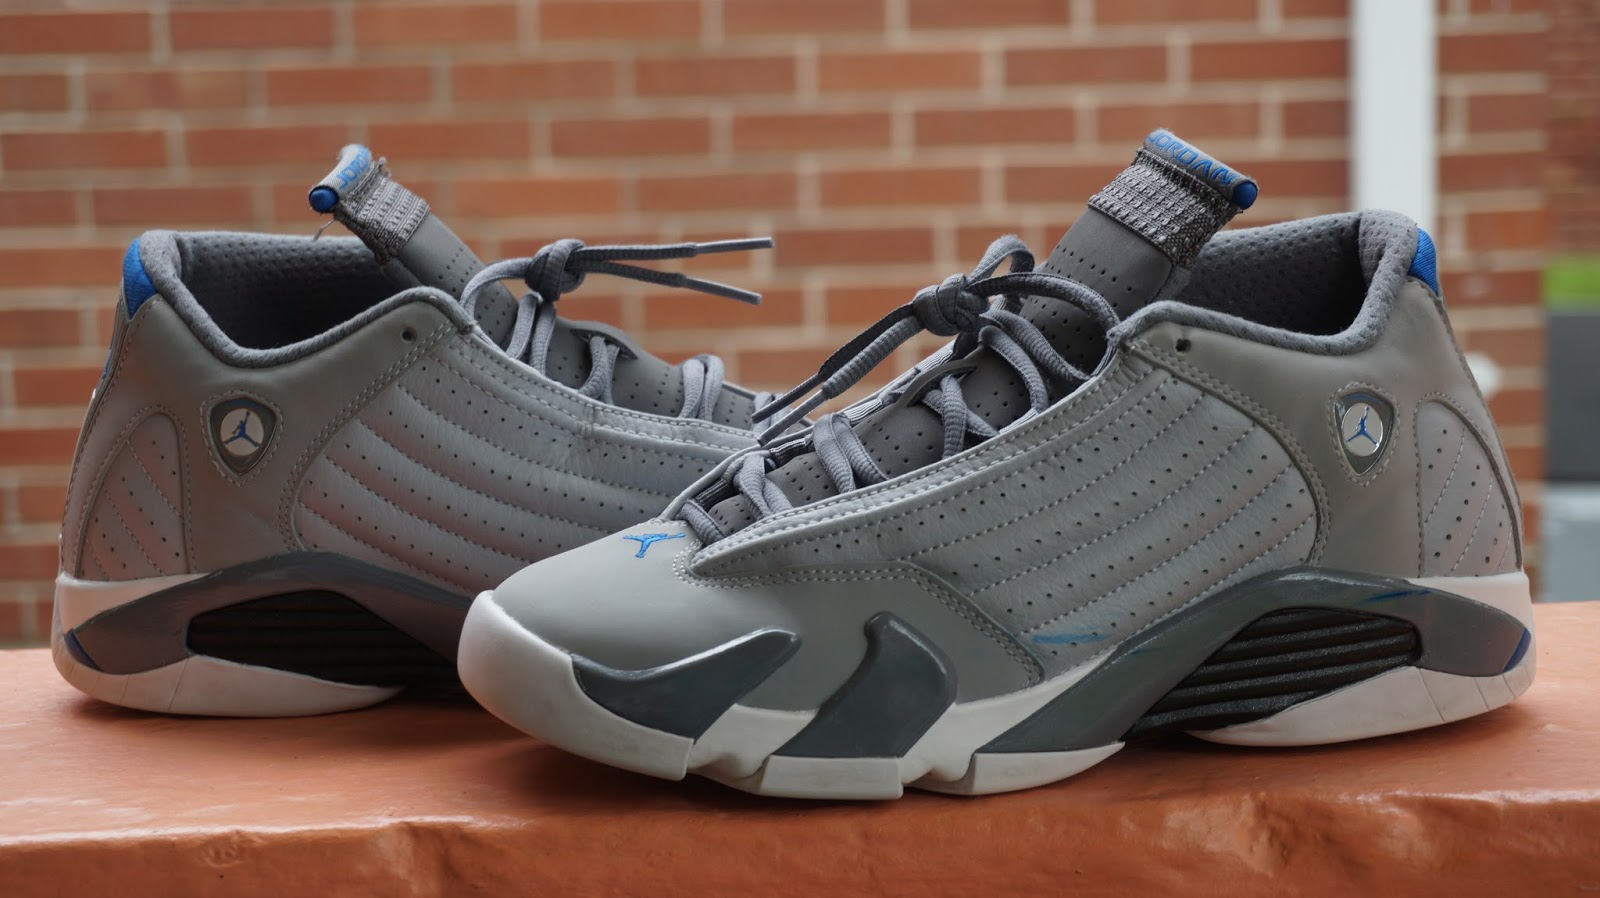 These Jordan 13s Were Found At Platos Closet Are The 13 Wolf Greys This Shoe Is Grey White And Blue In Great Condition